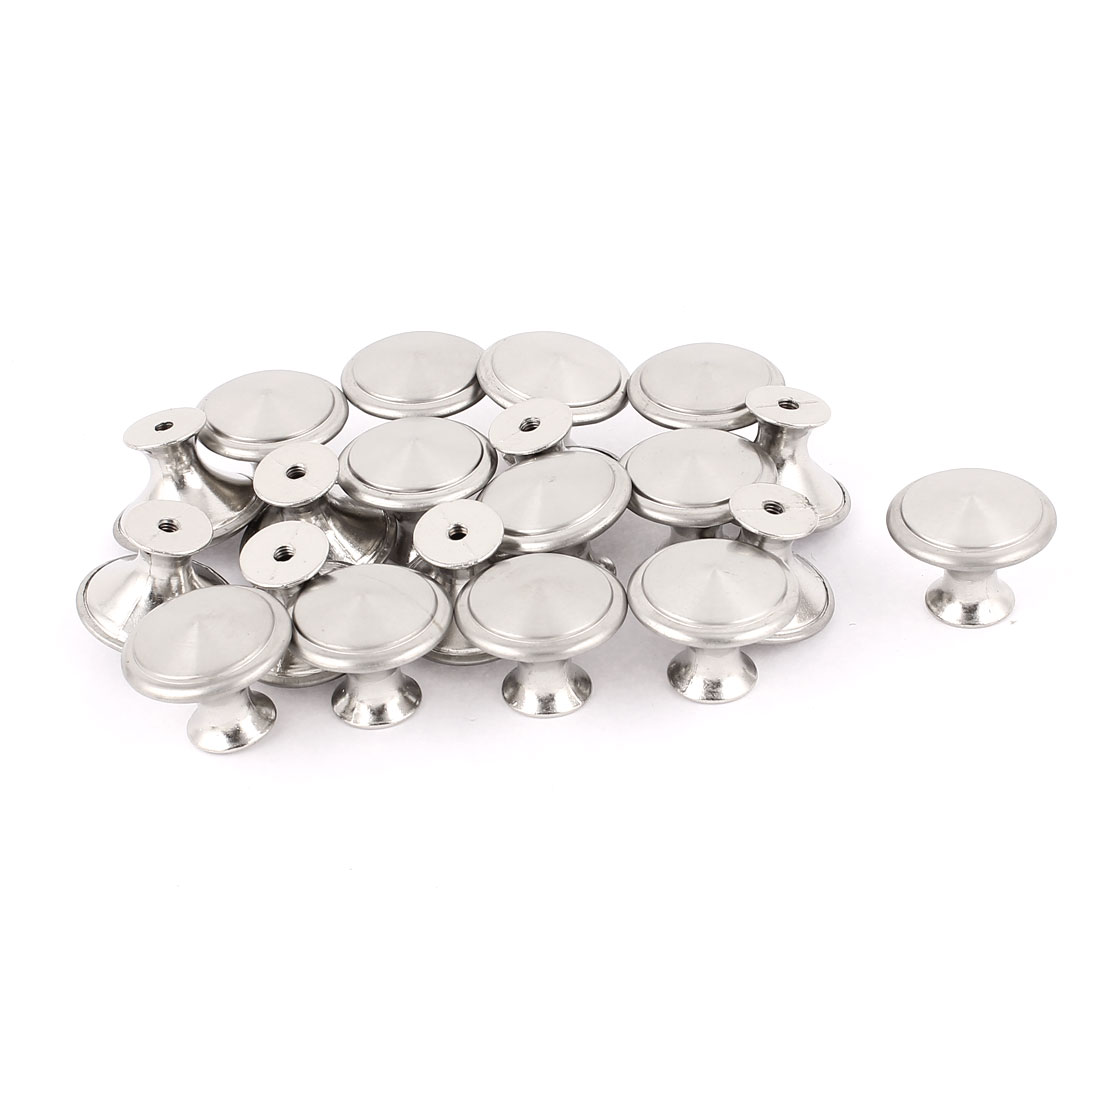 28mm Dia Metal Cabinet Cupboard Wardrobe Door Drawer Pull Knob Handle 20pcs